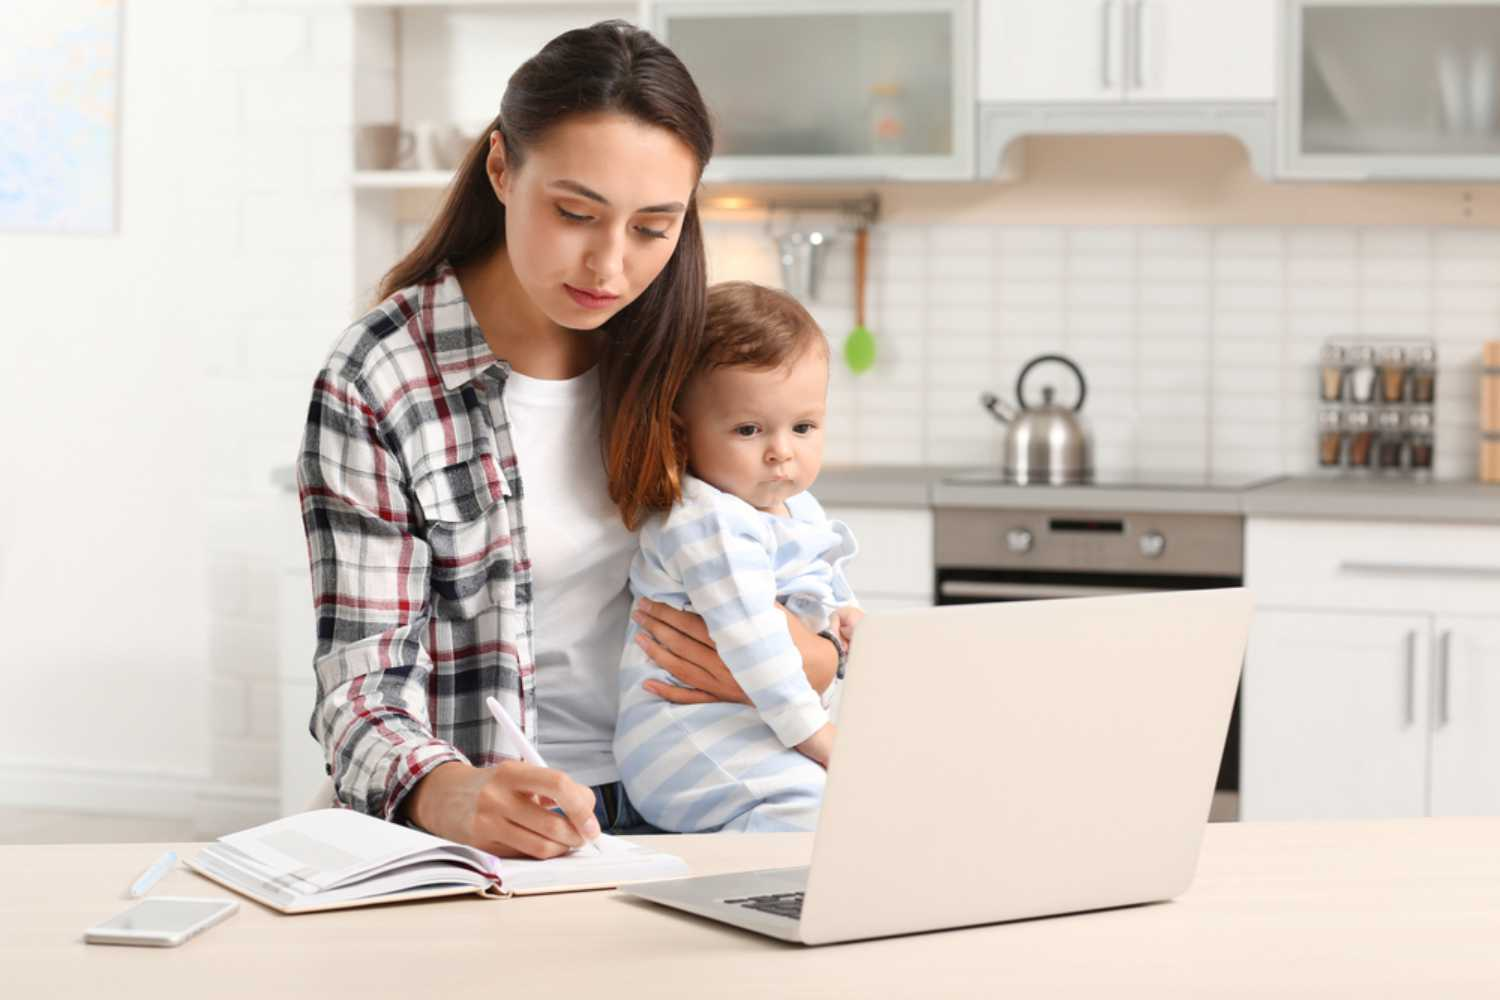 women holding kid and working